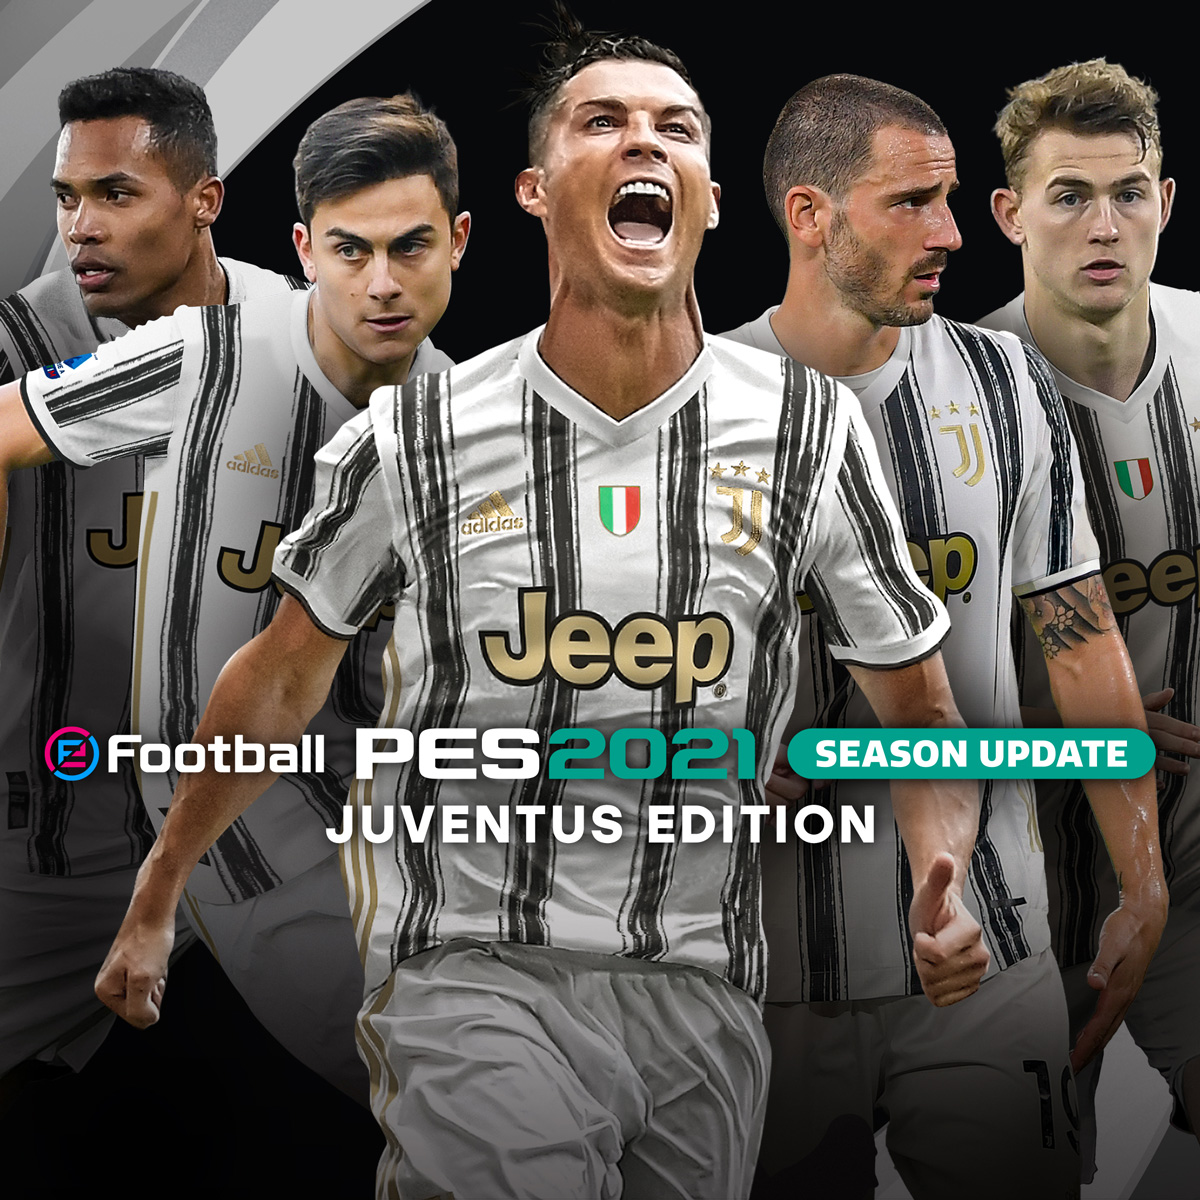 Juventus Konami Partner Clubs Pes Efootball Pes 2021 Season Update Official Site